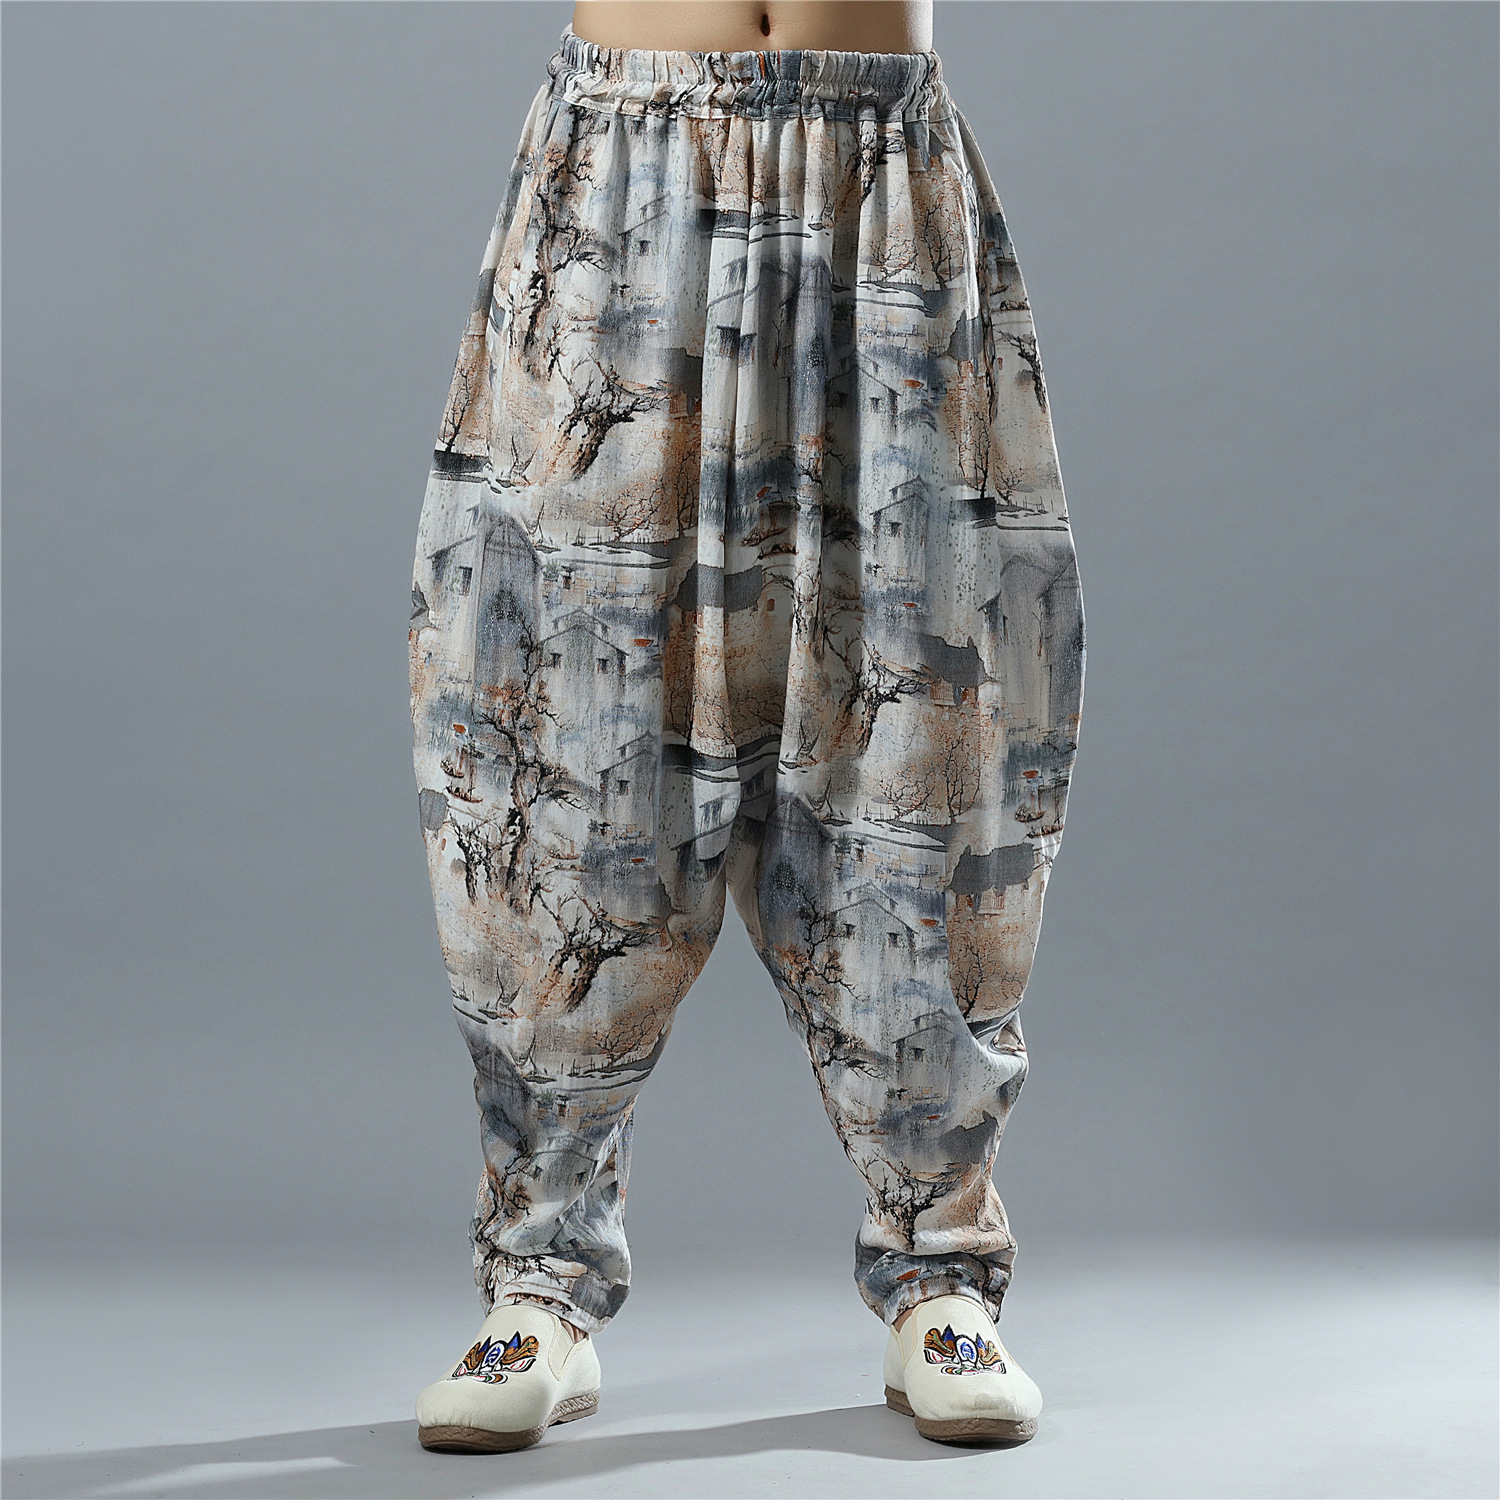 Men's Loose Casual Pants China Style Male High Quality Cotton Linen Printing Wide Leg Harem Pants Jogger Trousers Sweatpants